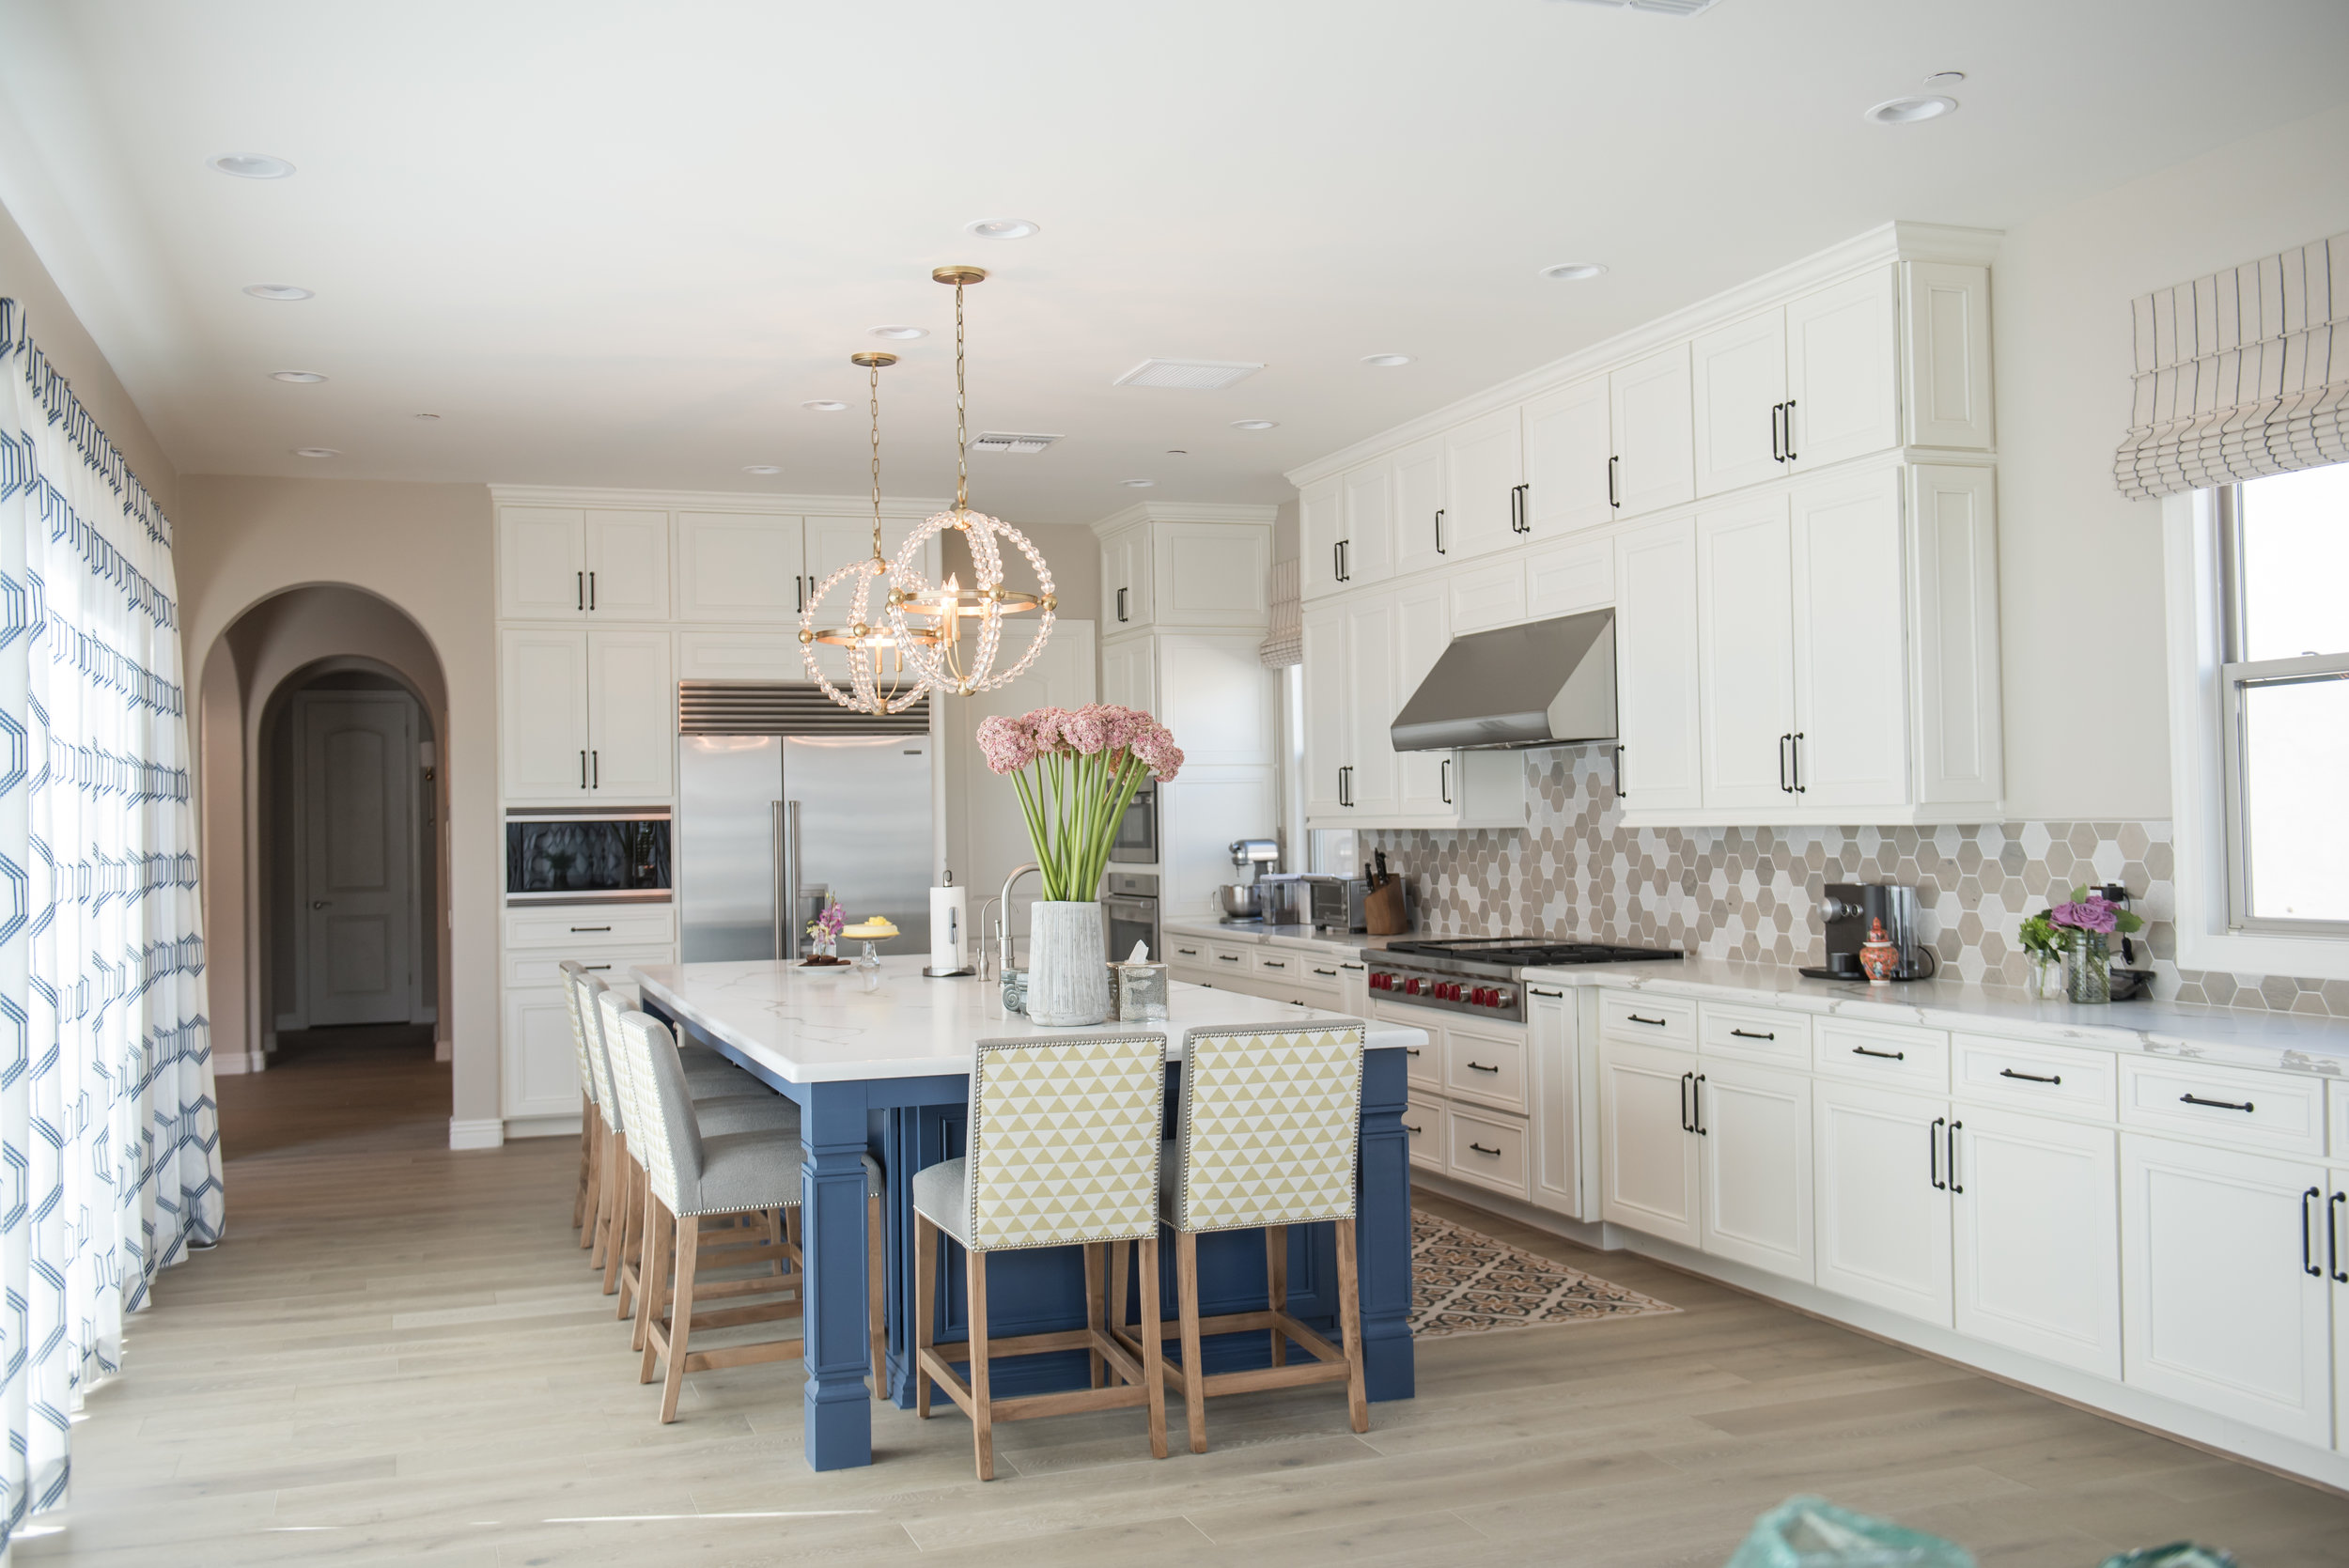 7 Kitchen+transitional+navyblueisland+Barstools+Yellow+Scottsdale.jpg